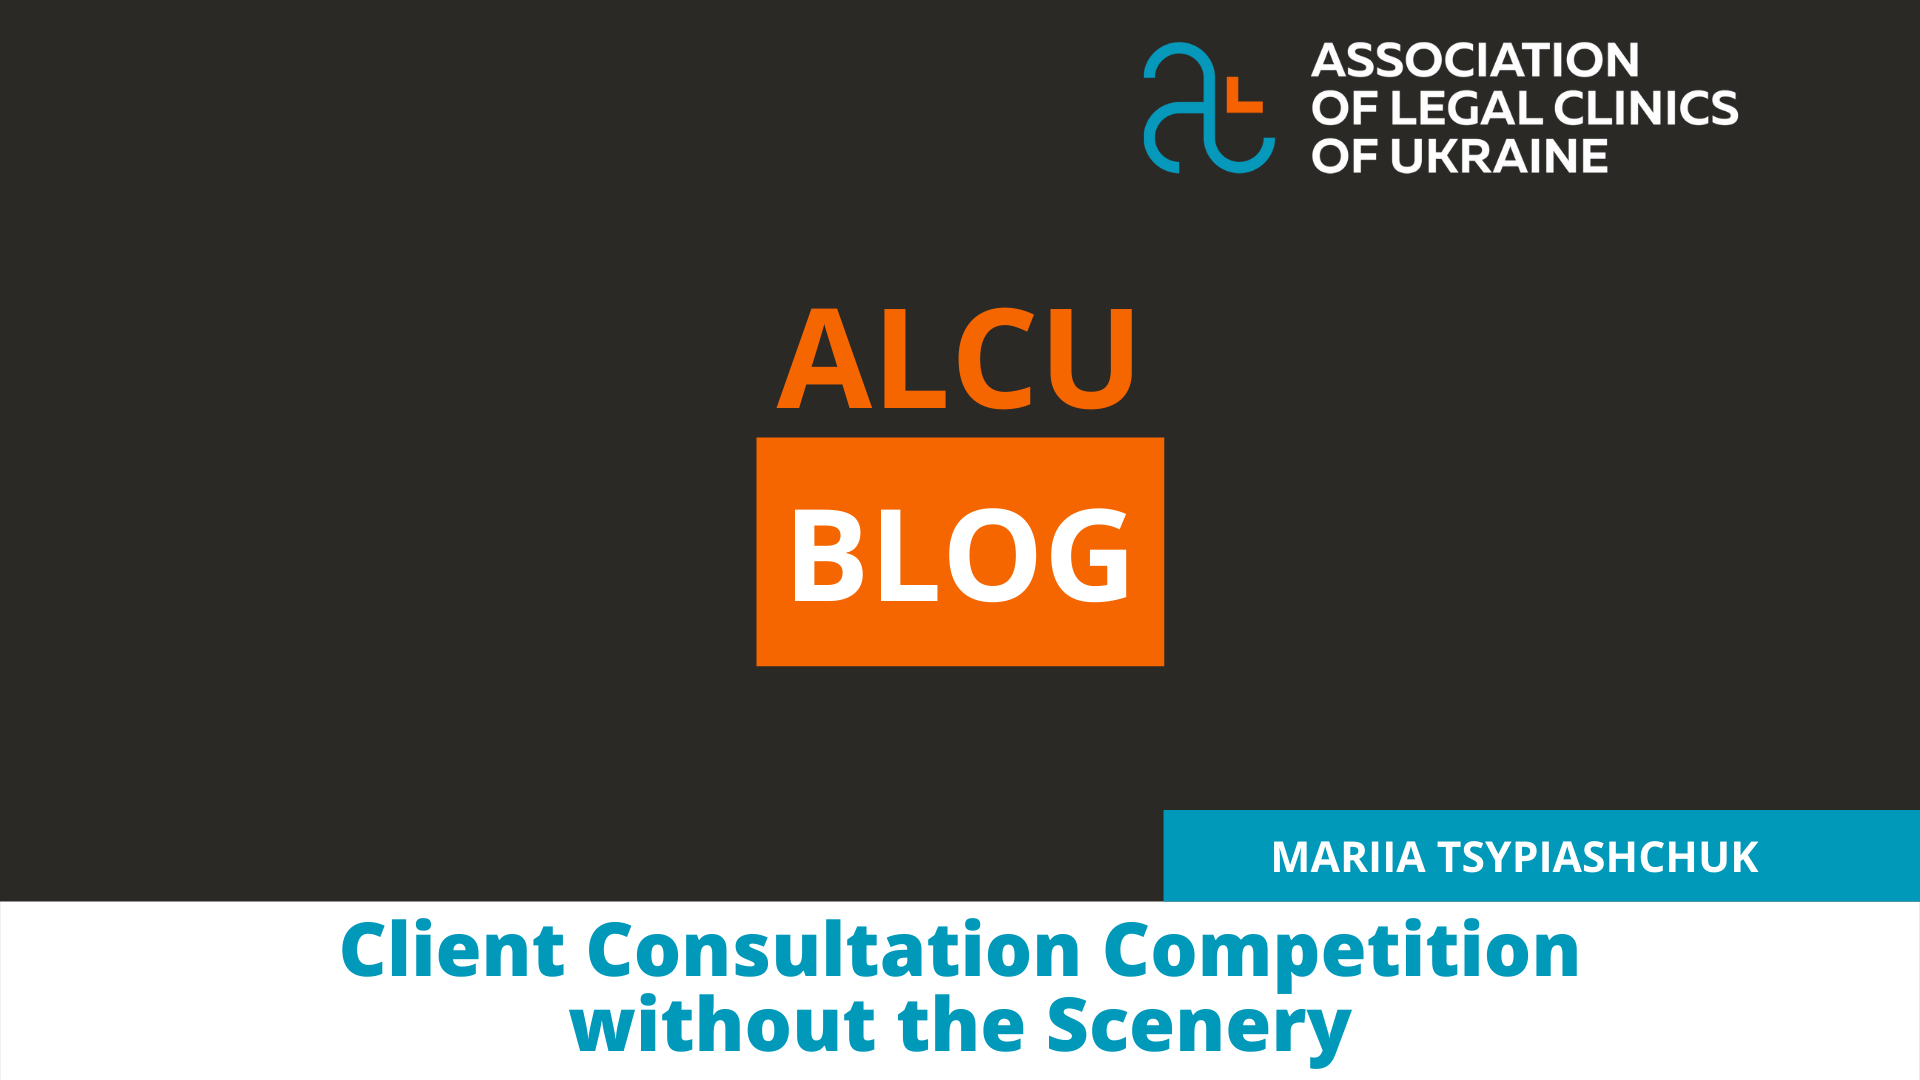 Client Consultation Competition without the Scenery